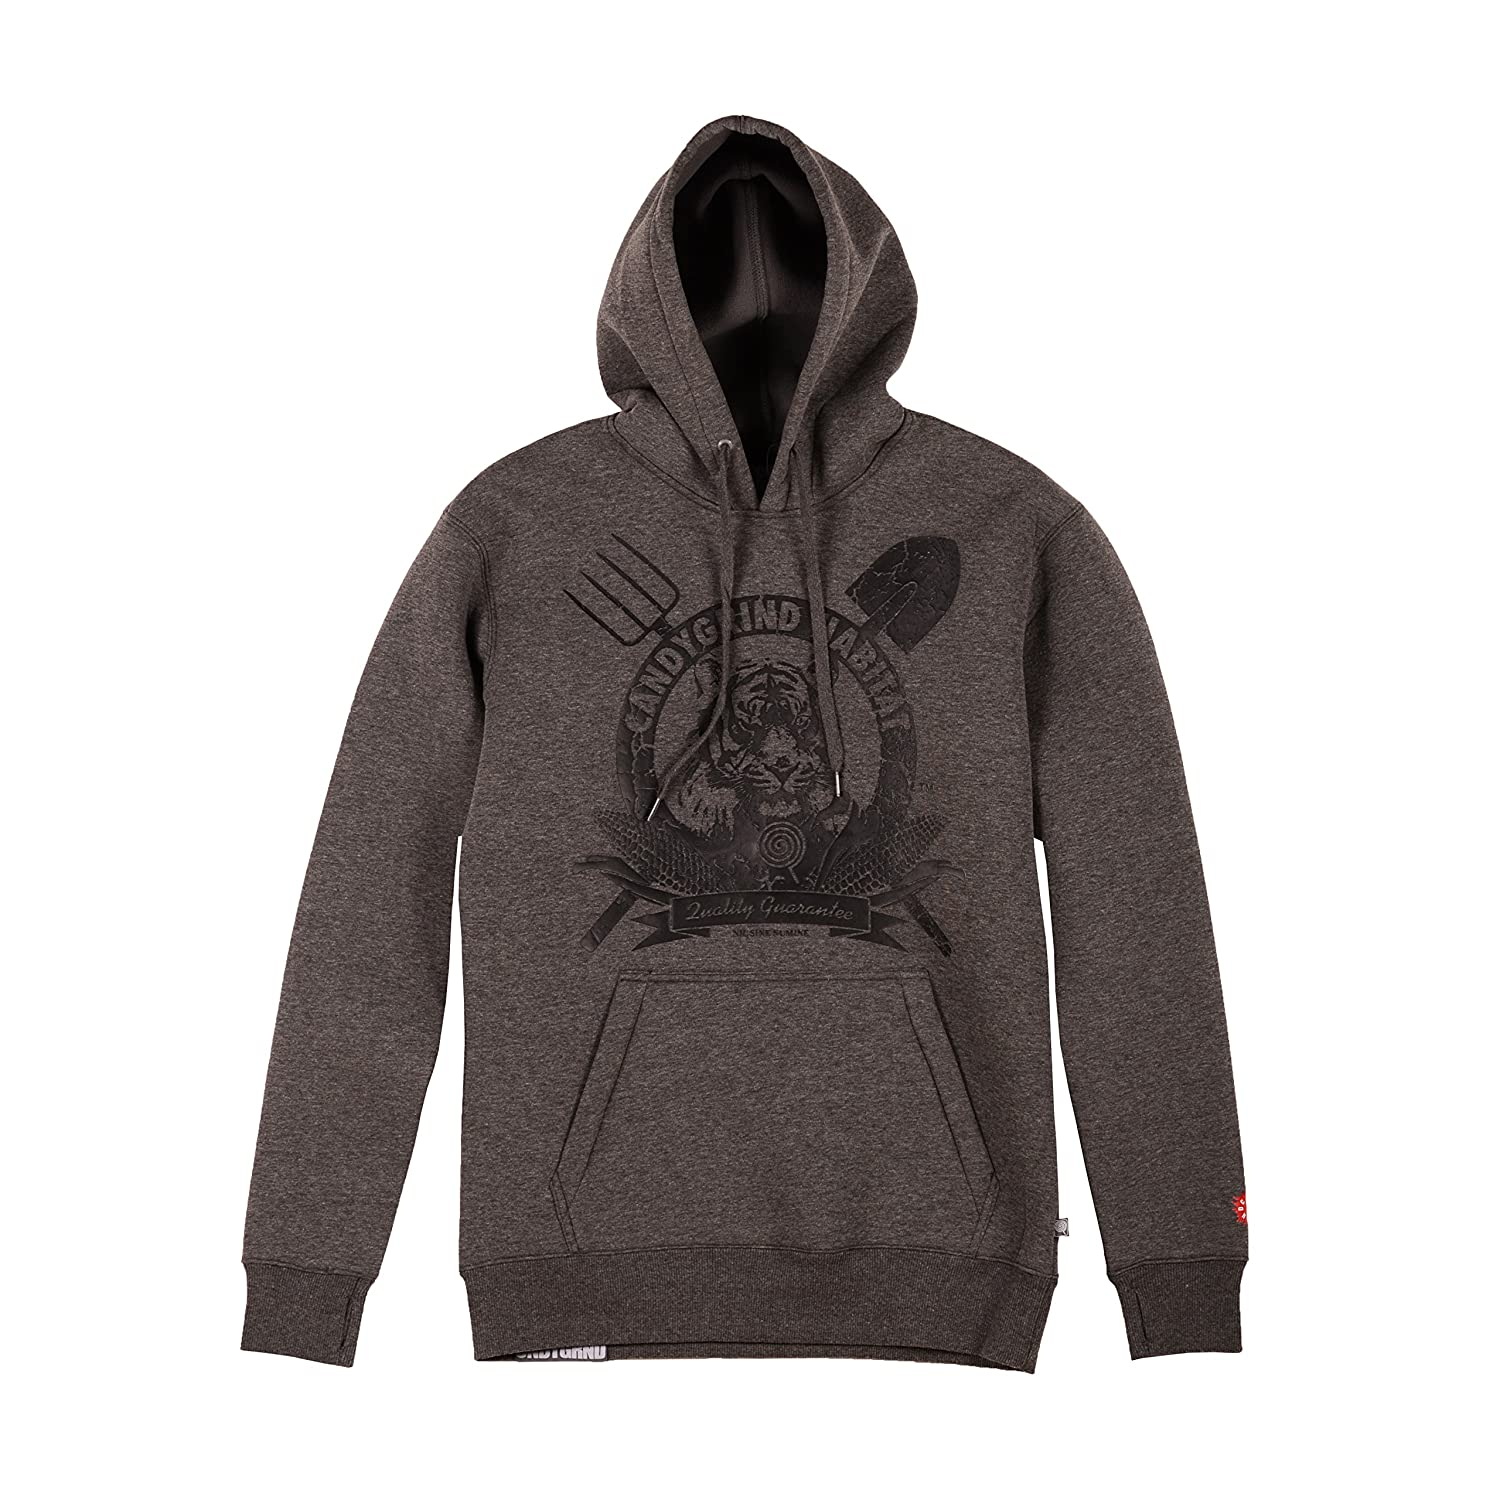 CandyGrind Habitat DWR Pullover Hoodie